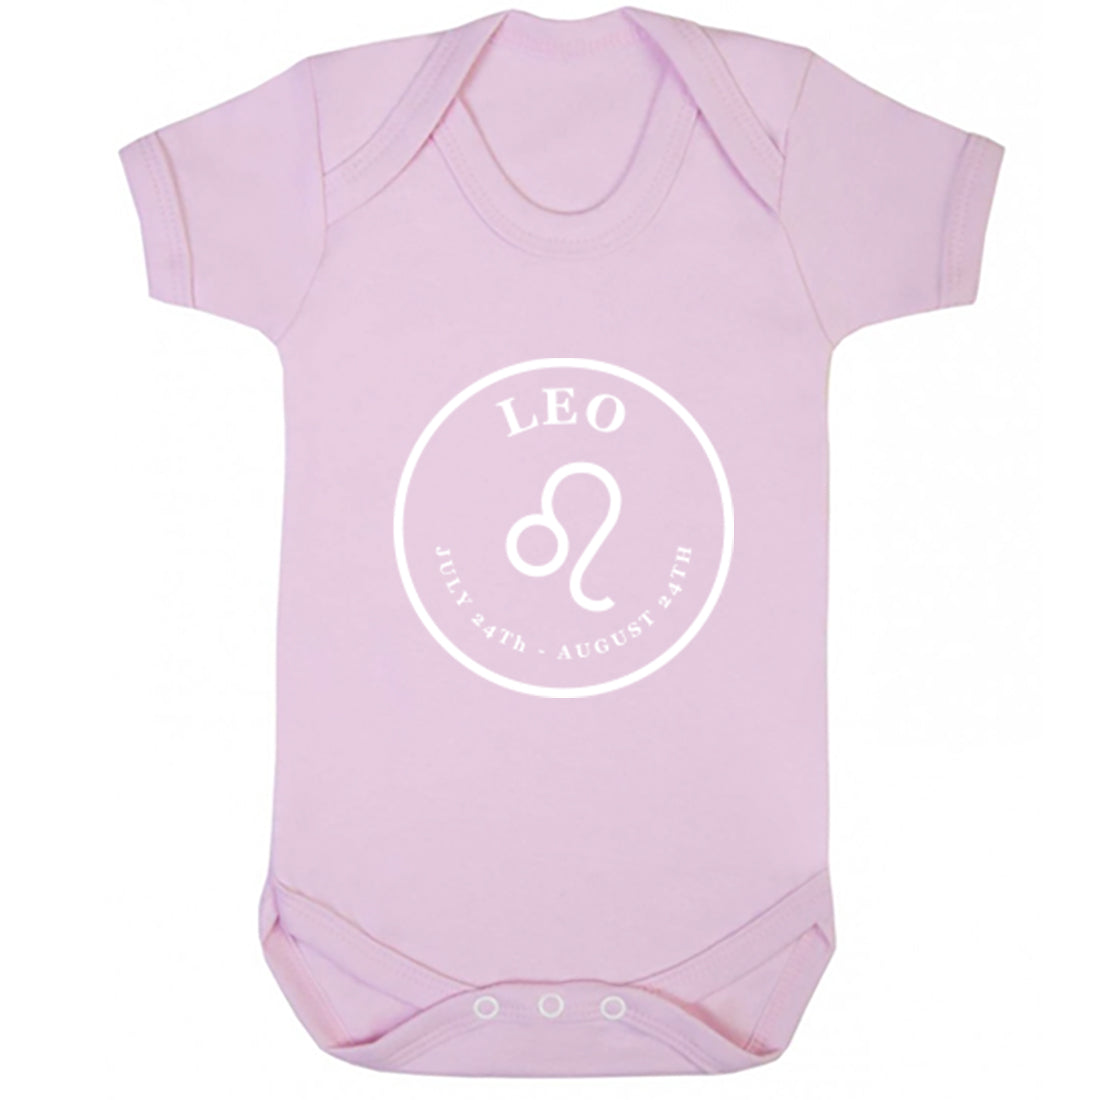 Leo Zodiac Sign Dates Baby Vest K2103 - Illustrated Identity Ltd.